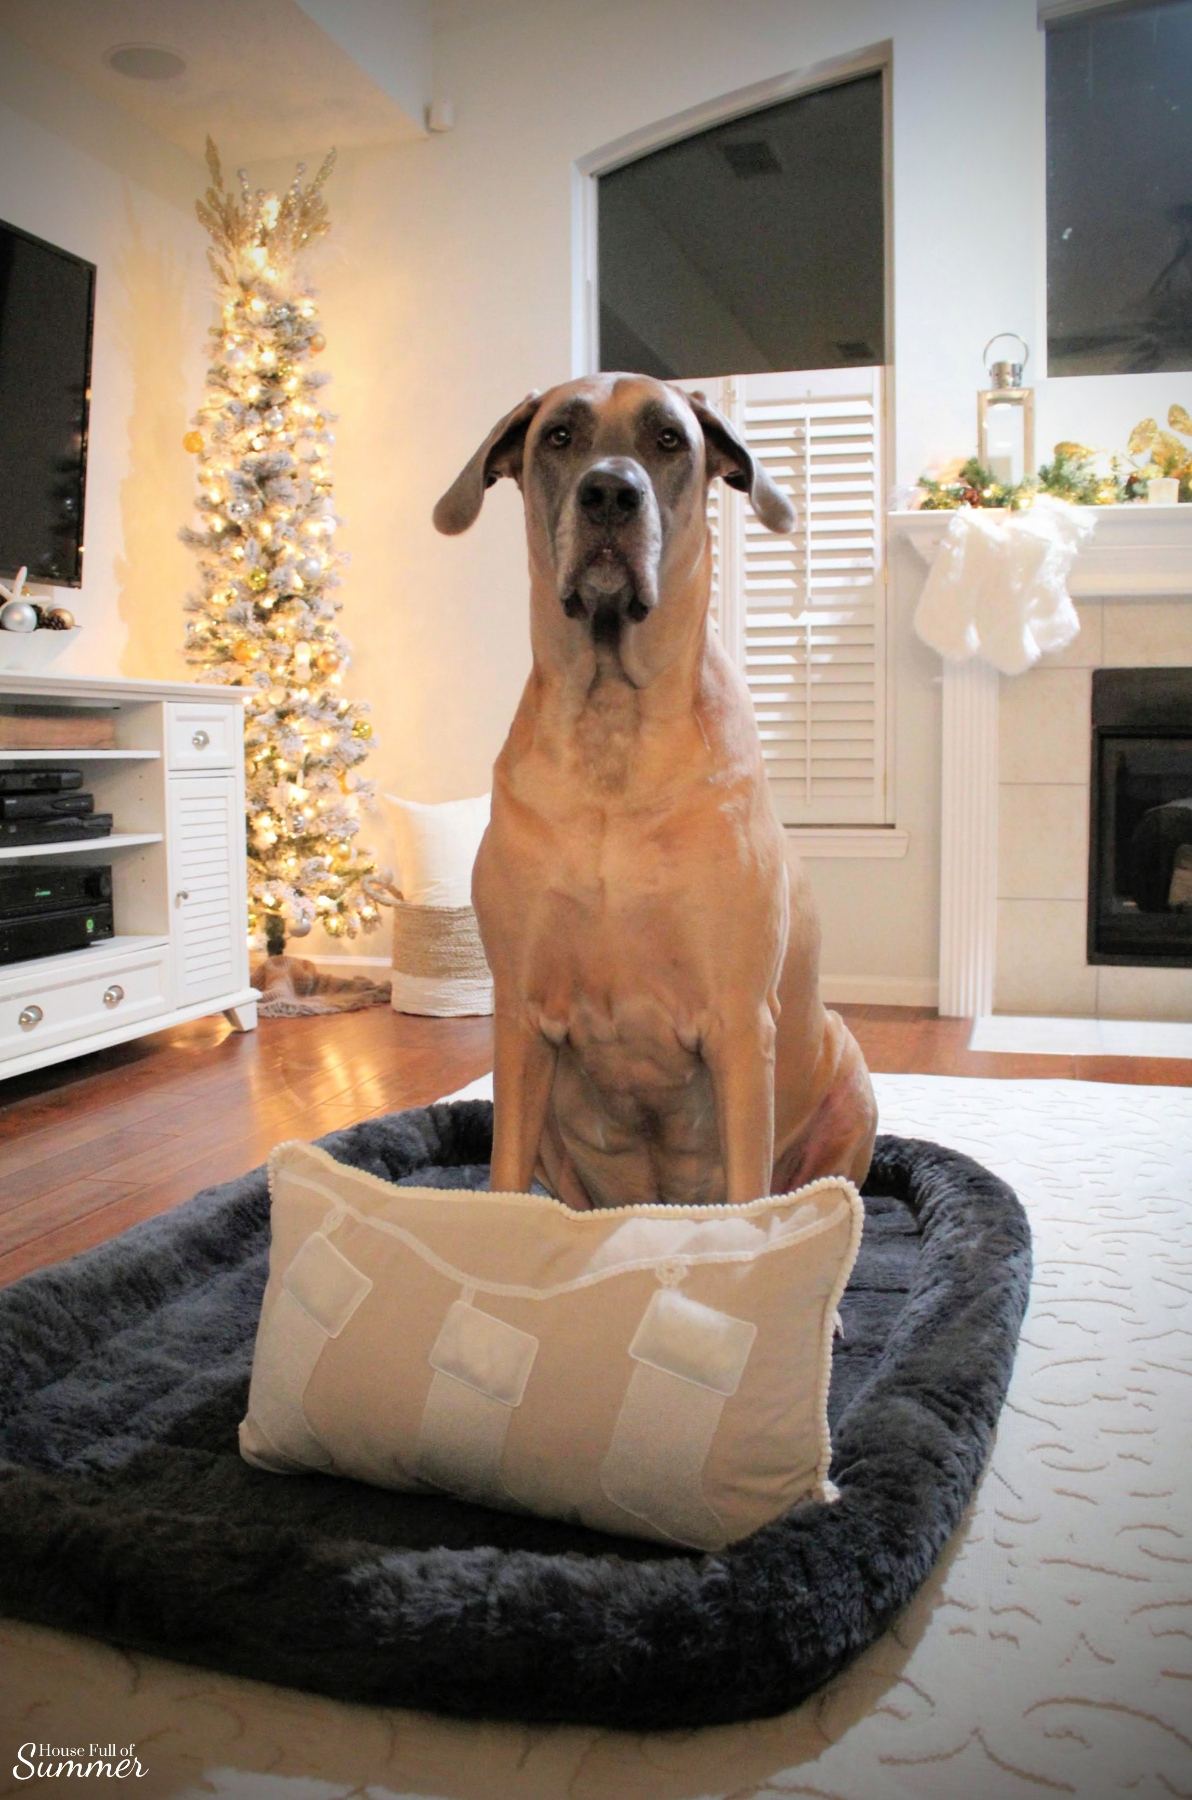 A Charming Southern Christmas Home Tour {Part 2} | House Full of Summer - Master Bedroom Christmas decor ideas, navy Christmas decorations, blue and white holiday decor, foyer, Gold Magnolias and Southern Christmas decorating ideas. XXL Dog Bed, crate liner, dog mat, Great Dane, English Mastiff, Daniff, large breed dog